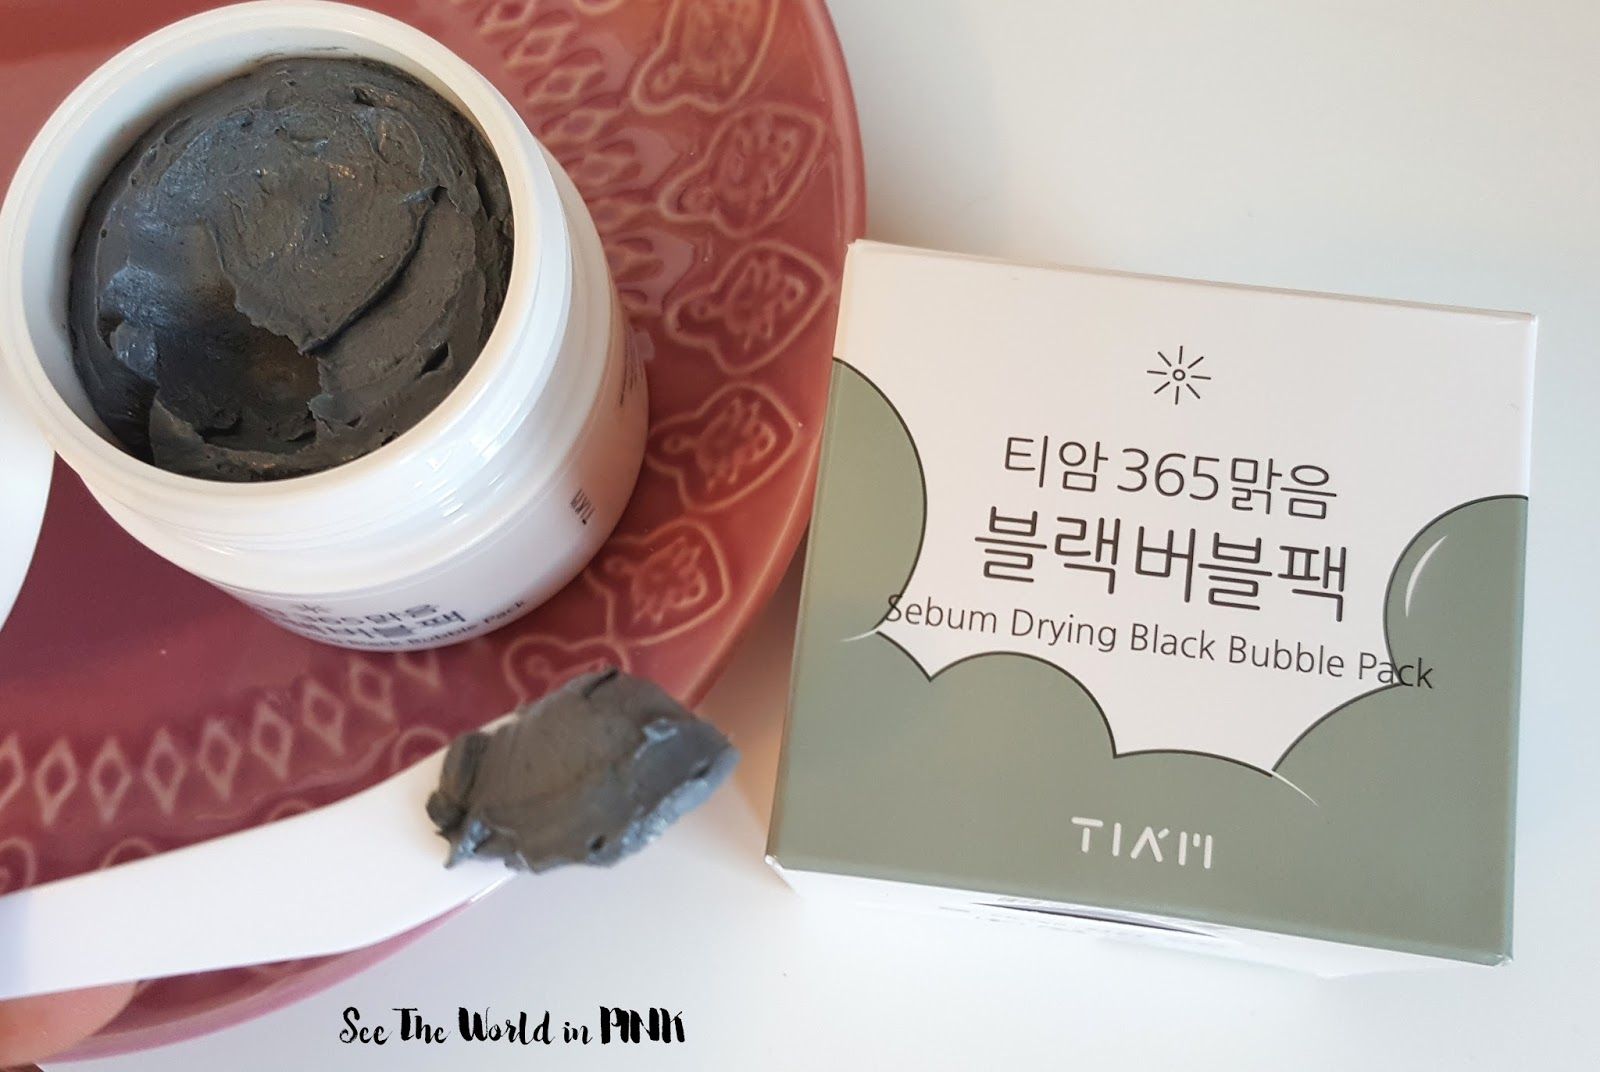 Mask Thursday - [JOLSE] TIA'M Sebum Drying Black Bubble Pack 80ml Review!